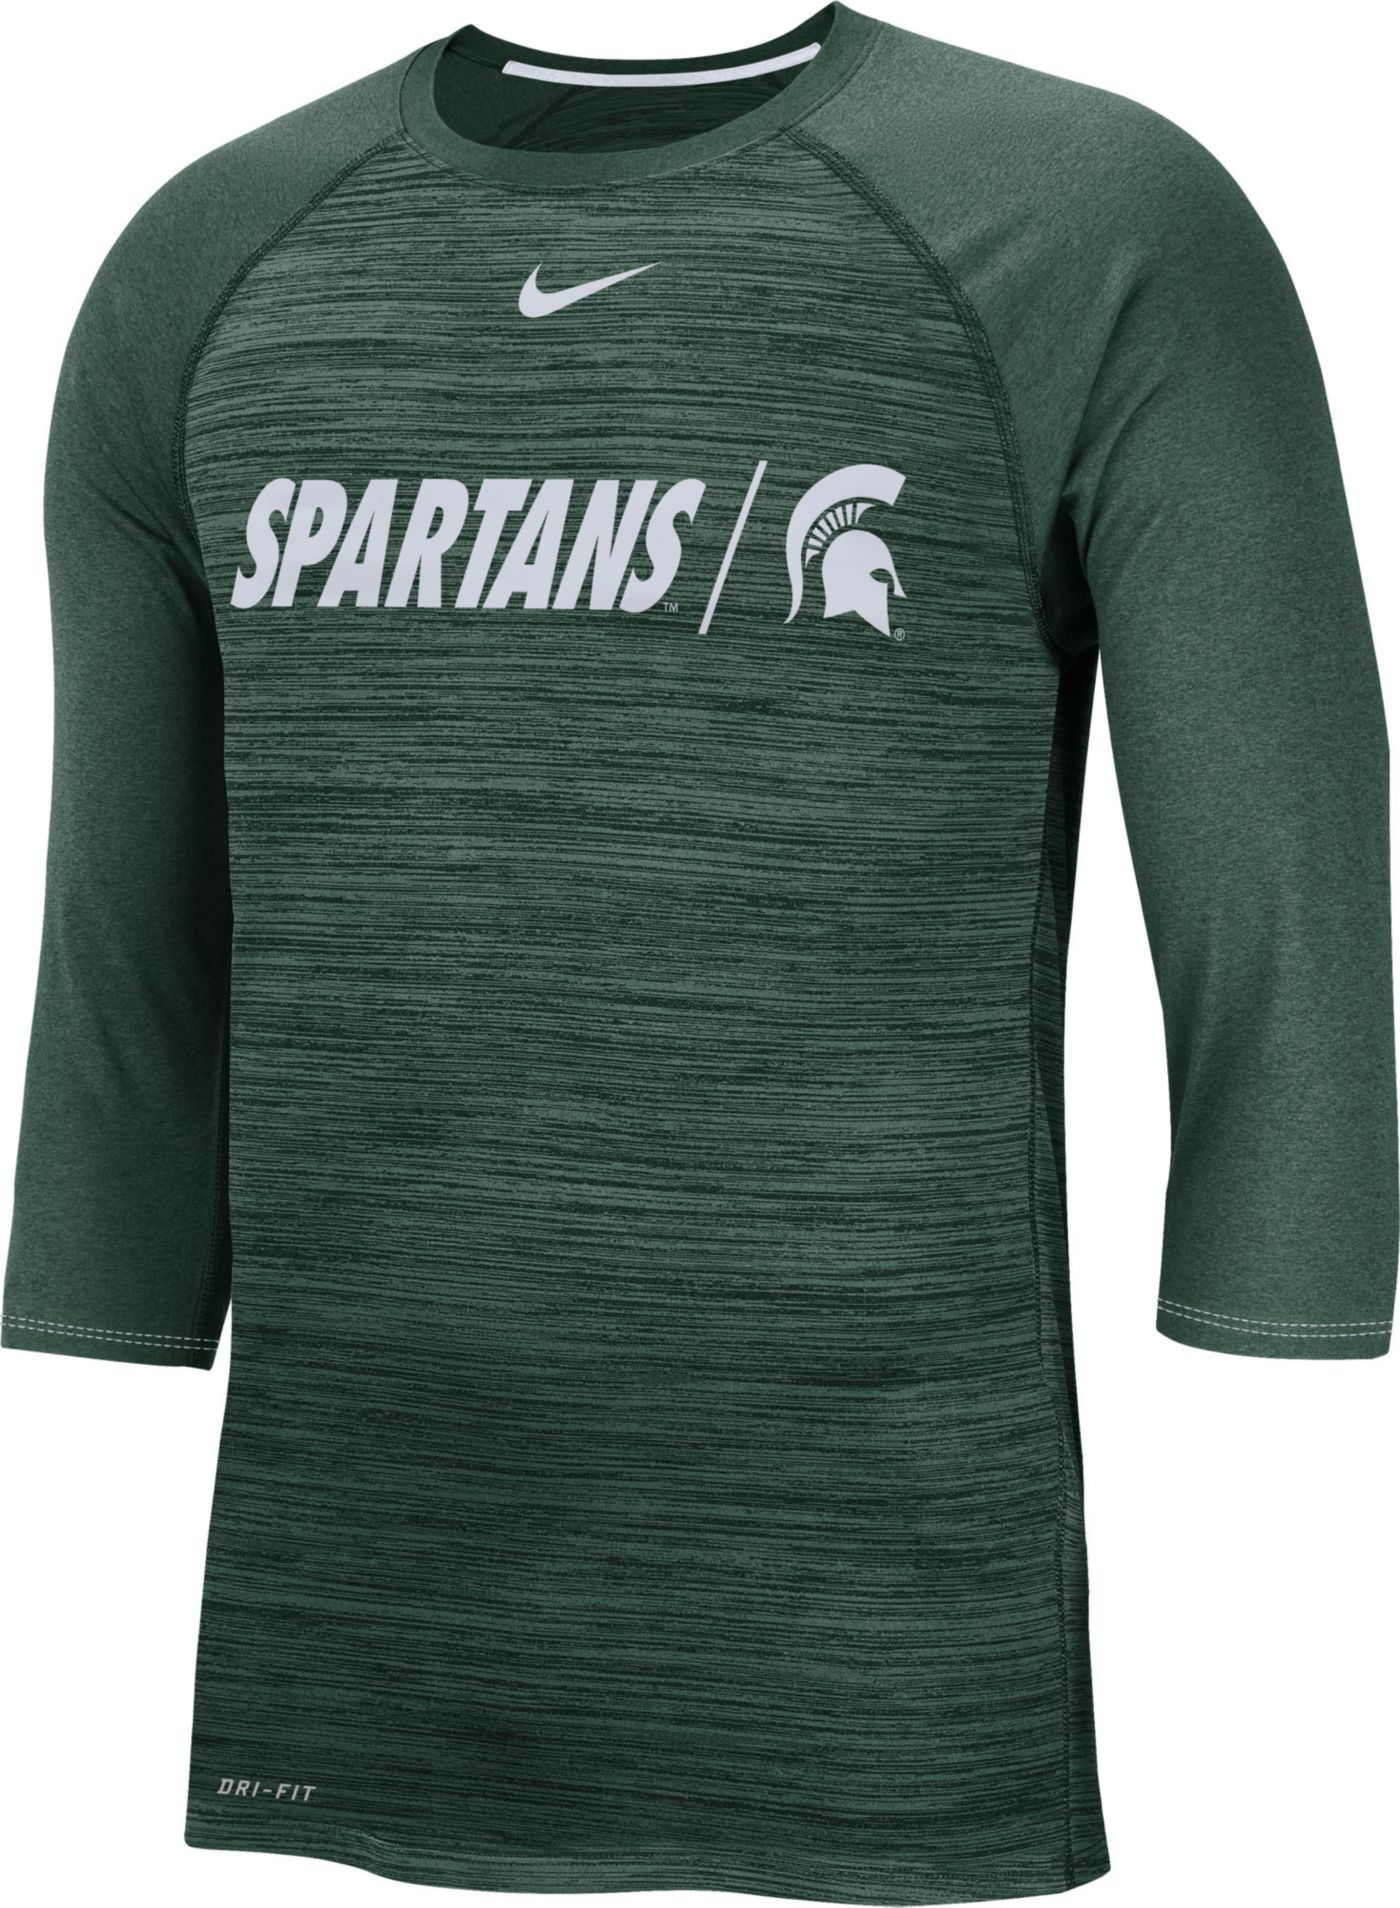 Nike Men's Michigan State Spartans Green Dry Legend 3/4 Sleeve T-Shirt